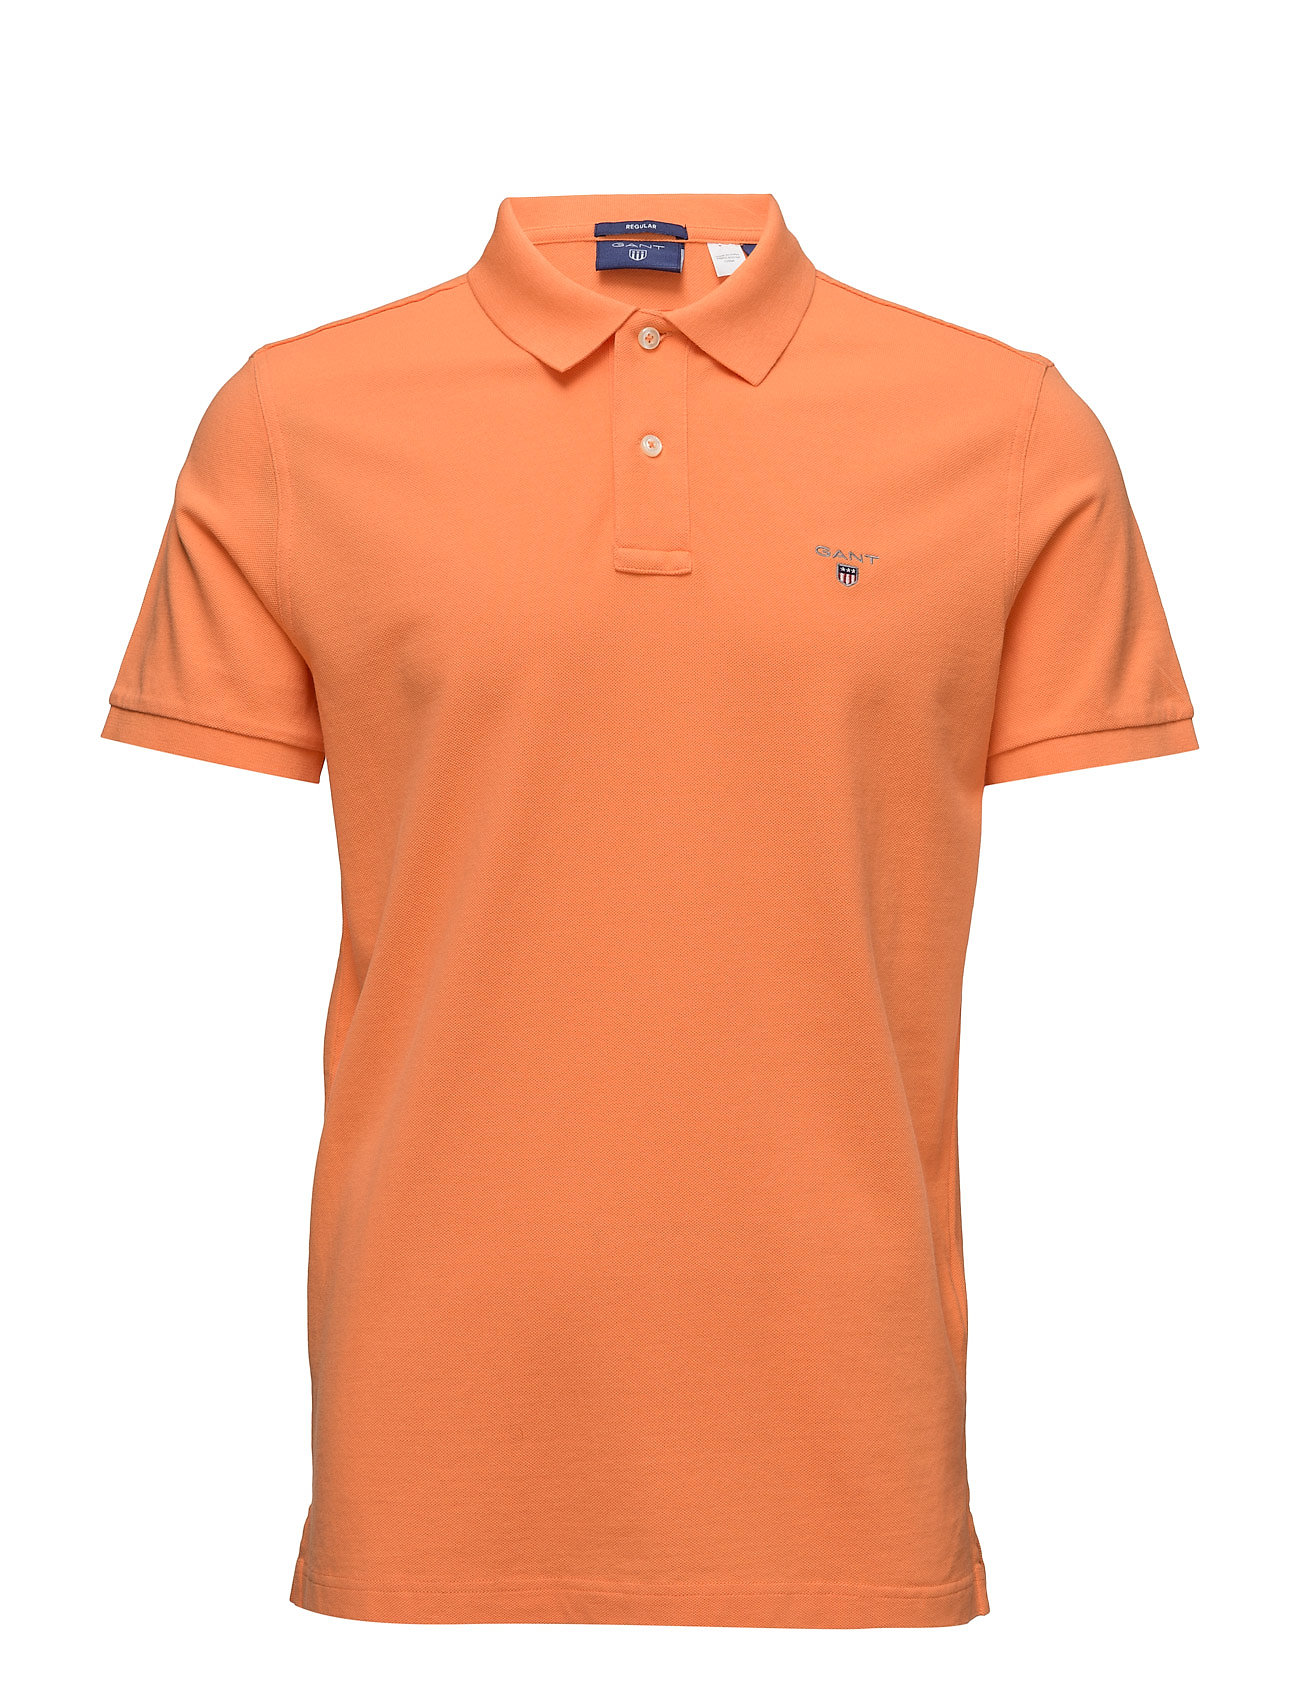 Gant THE ORIGINAL PIQUE SS RUGGER - CARROT ORANGE